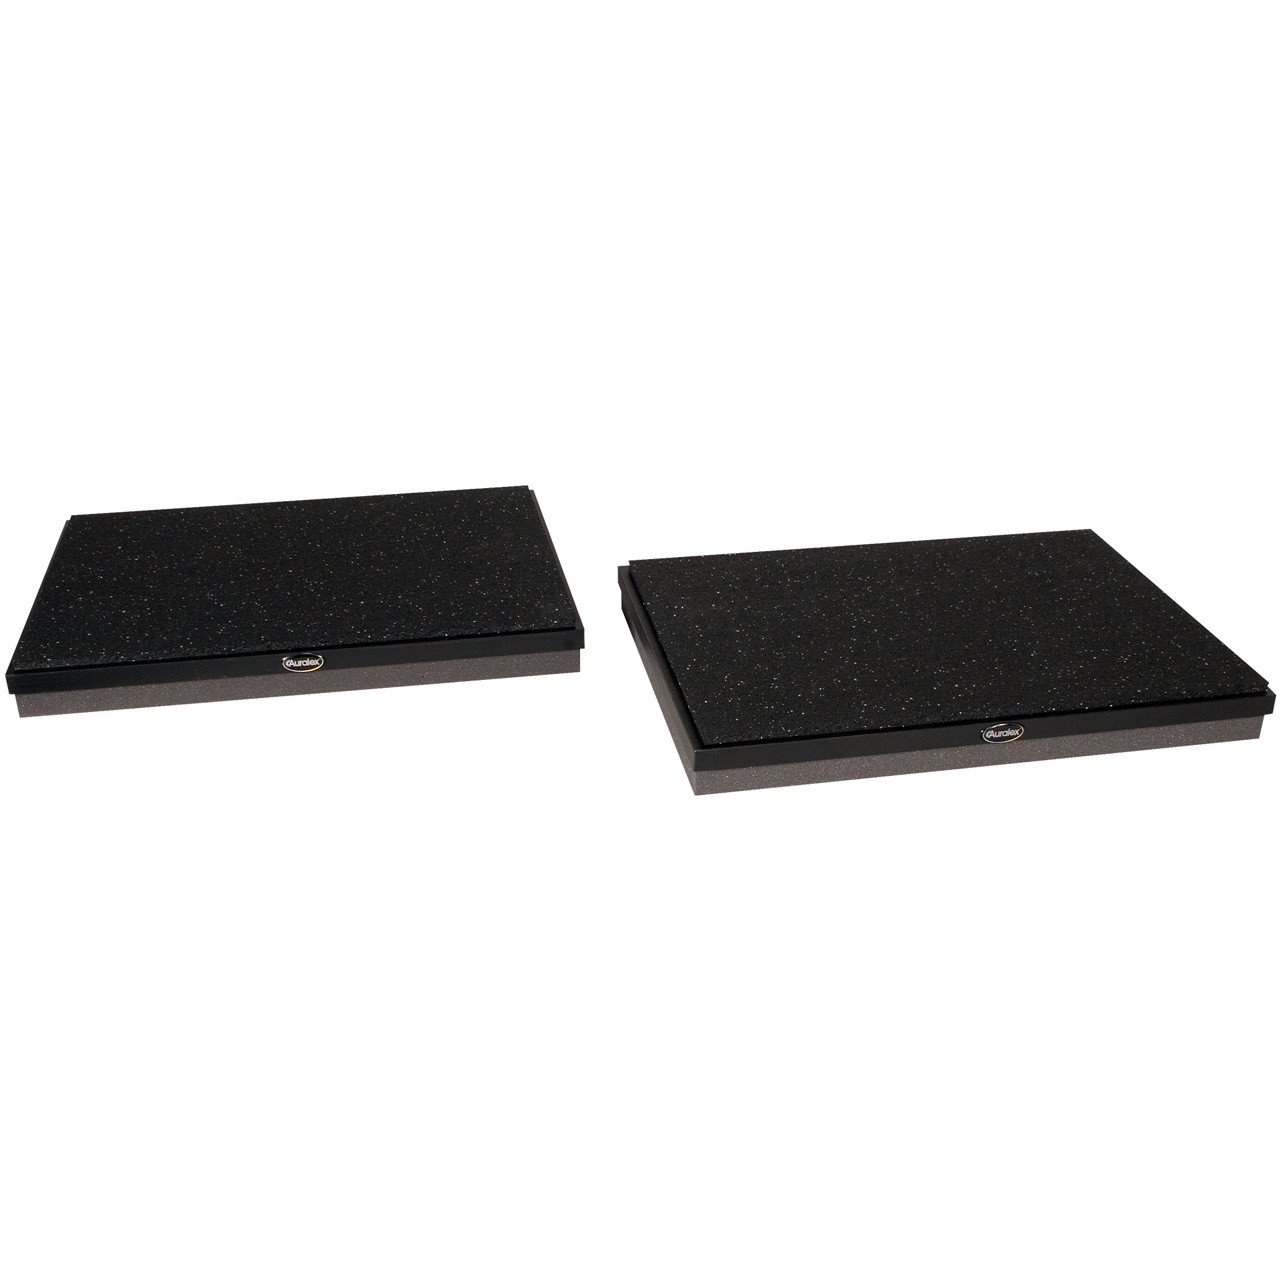 Auralex ProPad-XL Pro Speaker Isolation Pads